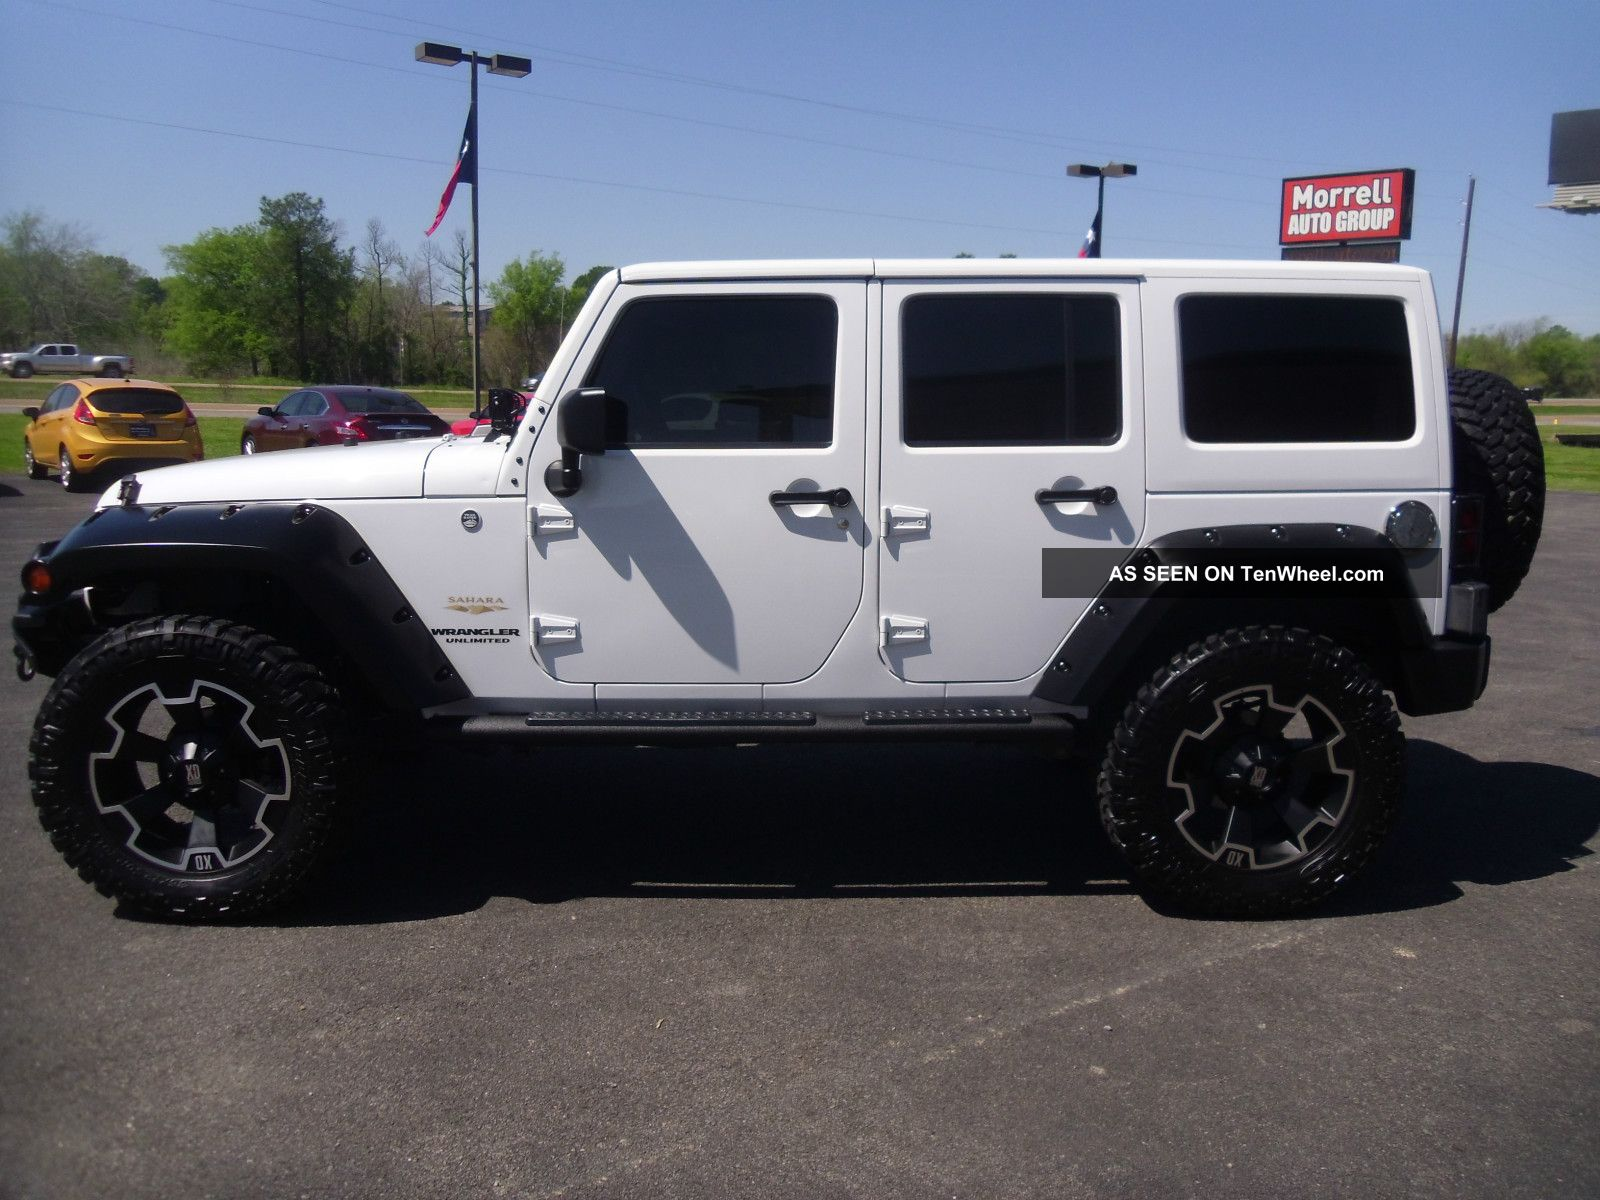 2011 jeep wrangler unlimited sahara hard lifted. Black Bedroom Furniture Sets. Home Design Ideas